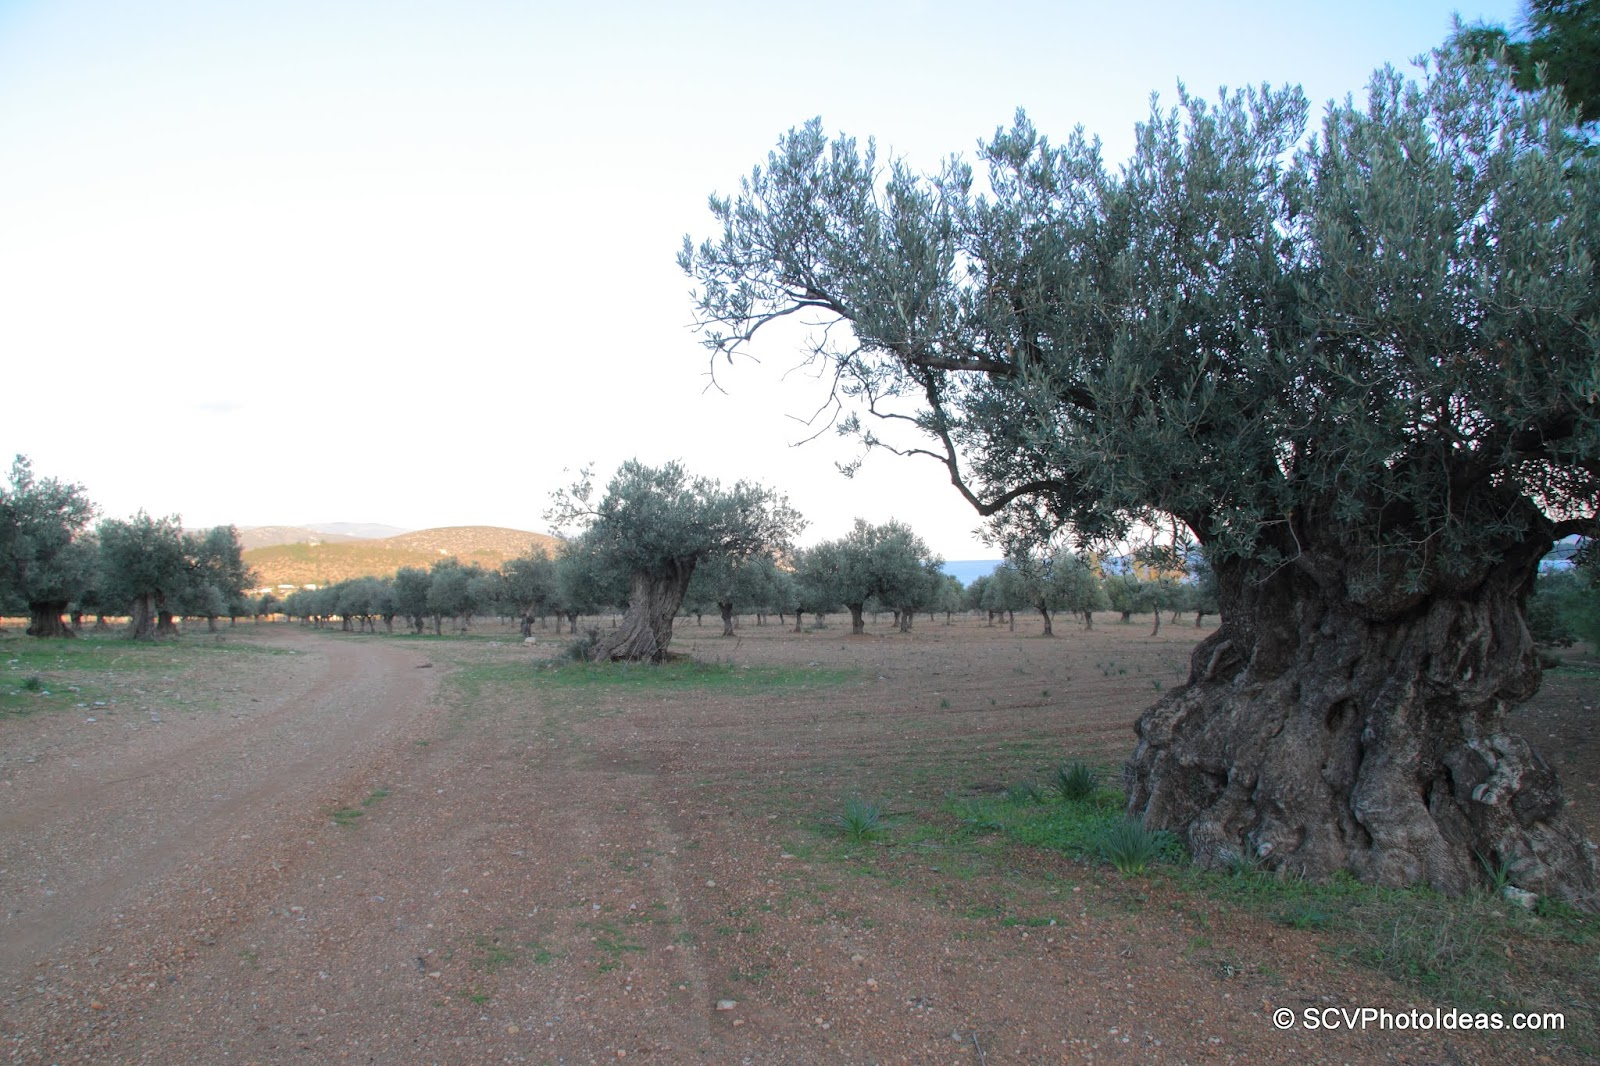 Olive groves with ancient guardians Olives